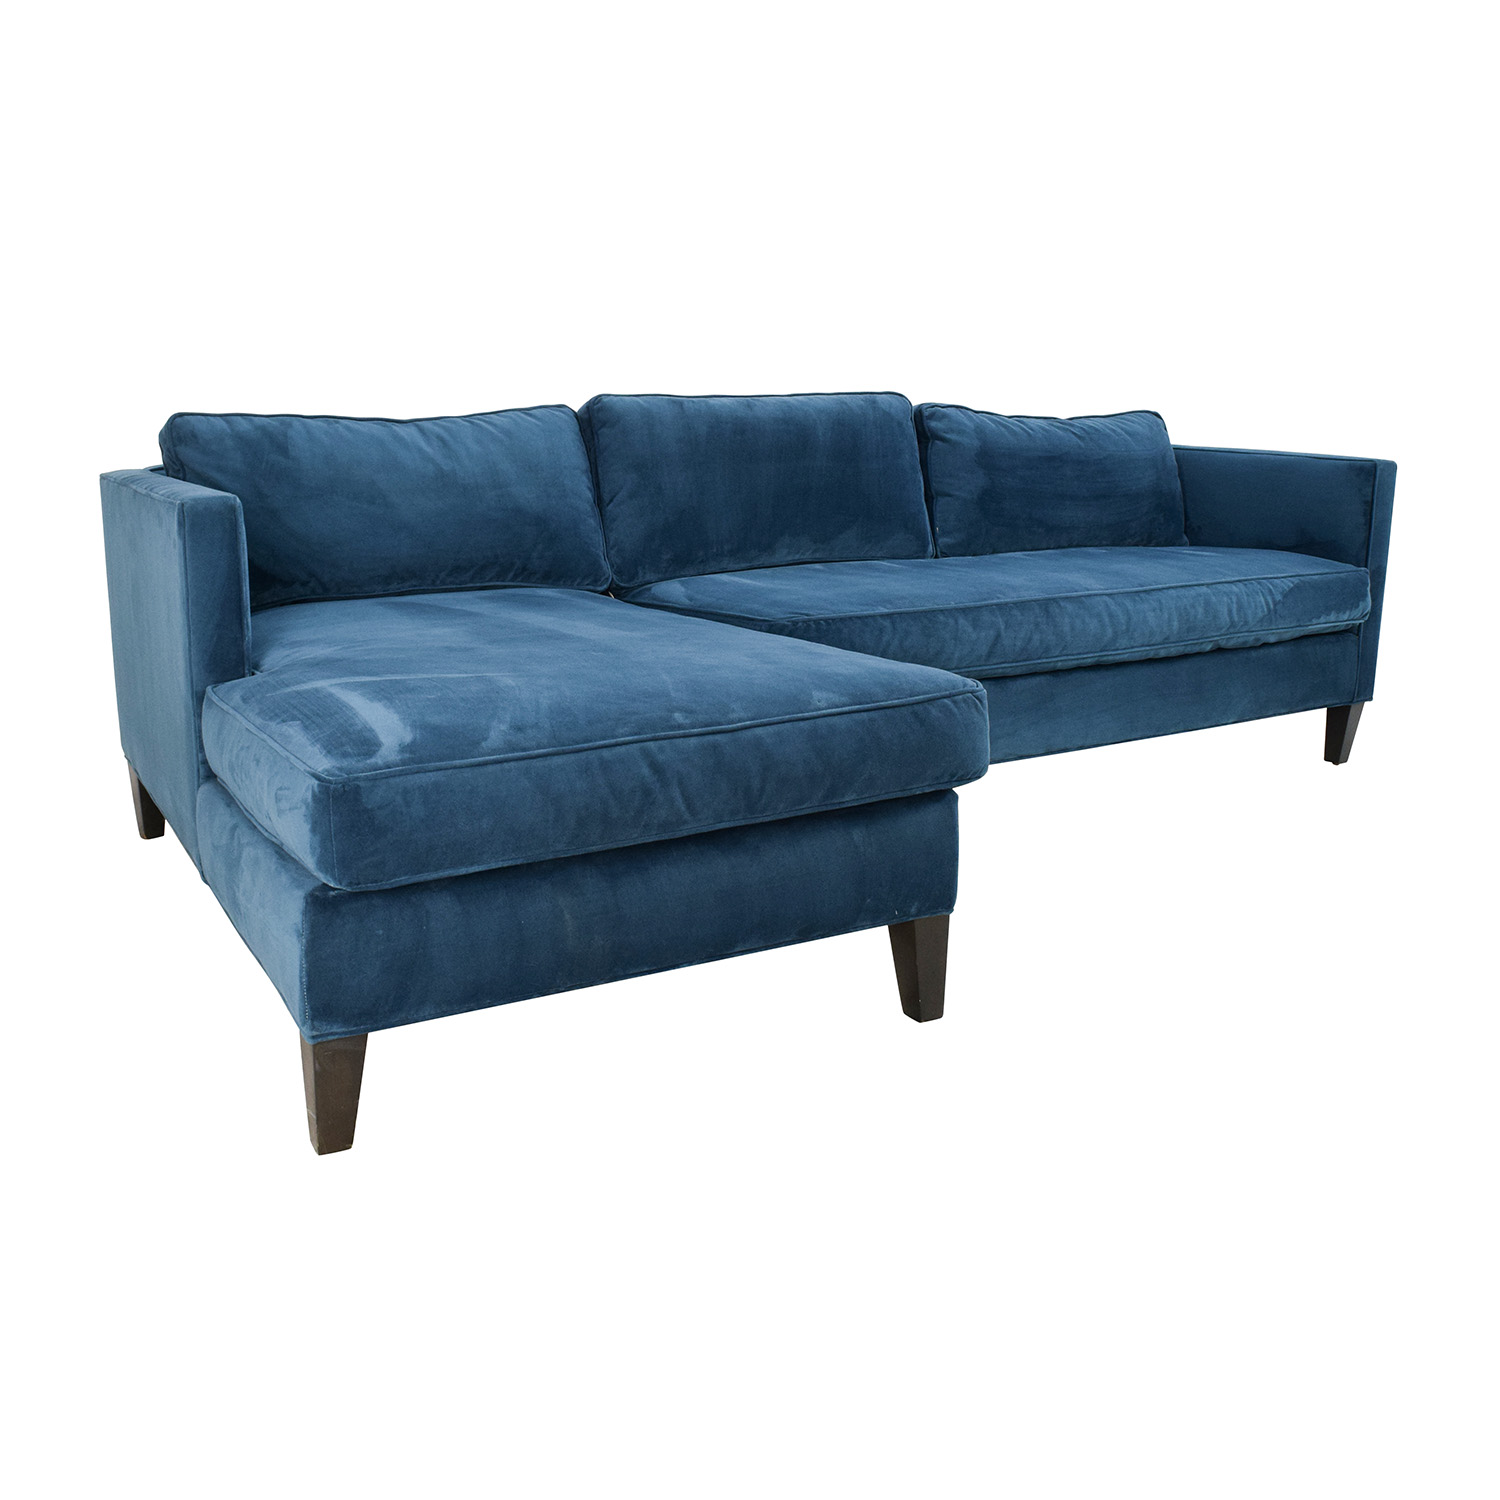 67 off west elm west elm dunham sectional sofa sofas for Best west elm sofa